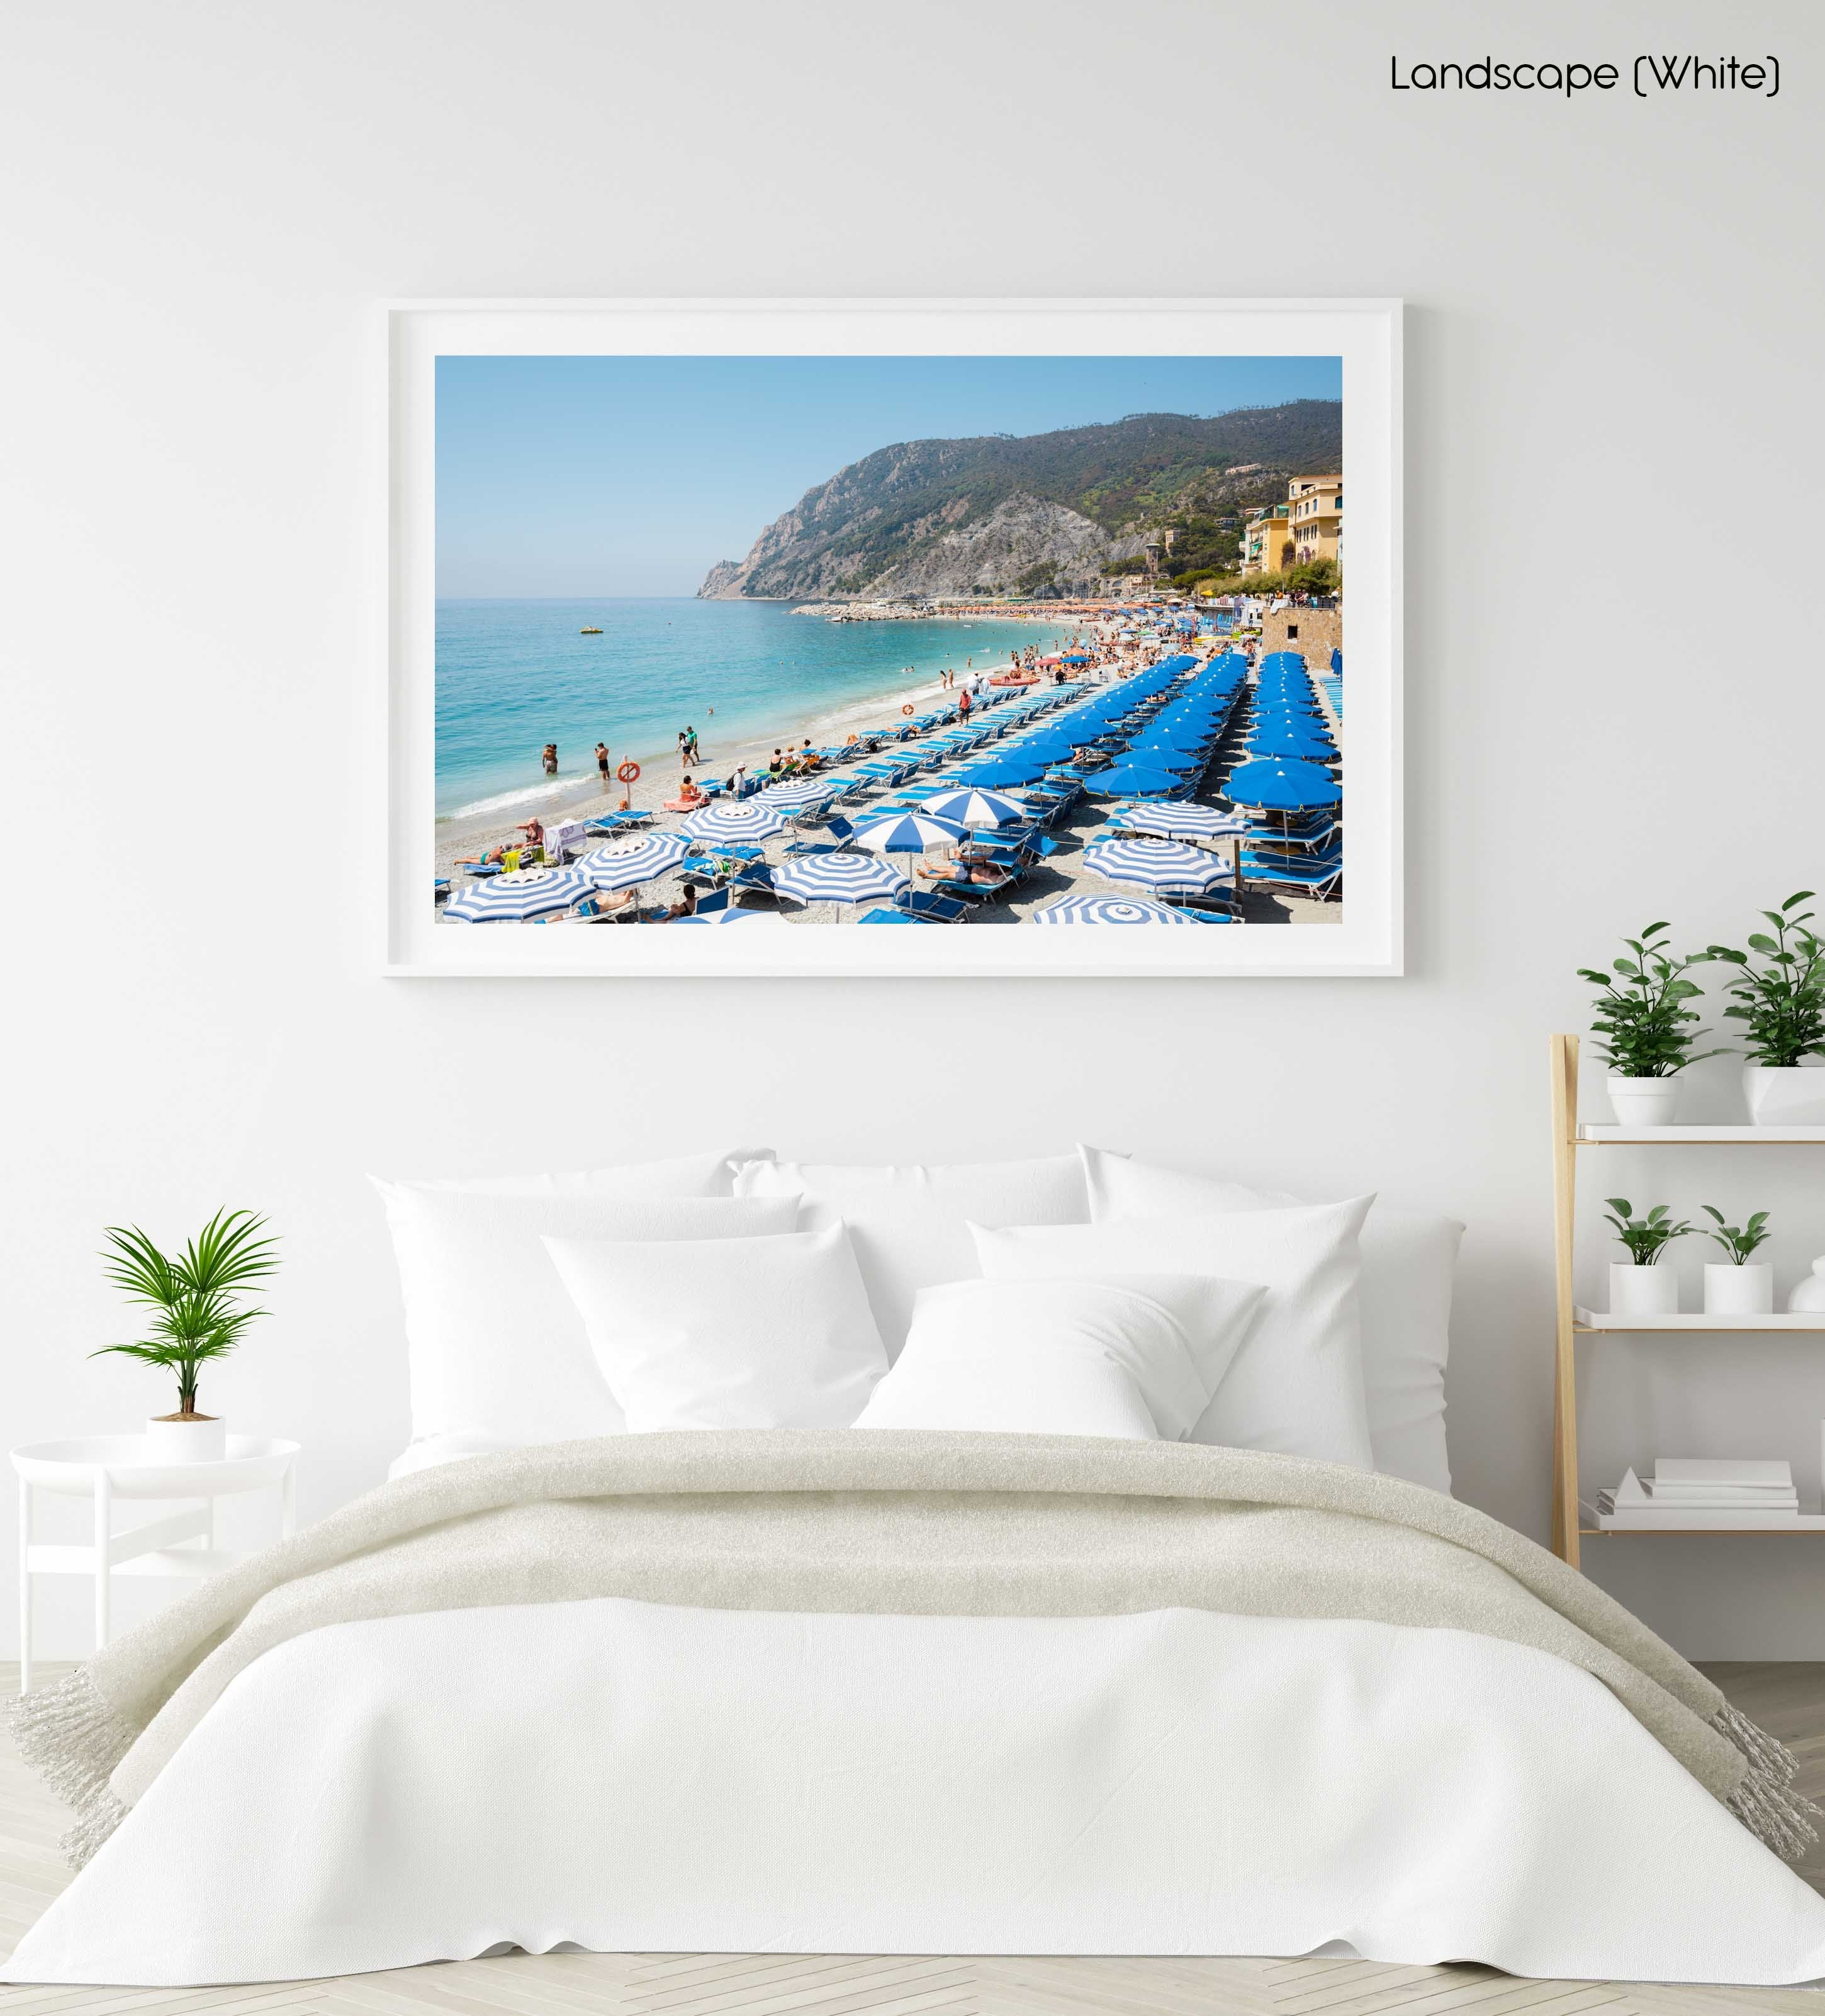 People and umbrellas at Monterosso beach Cinque Terre during summer in a white fine art frame